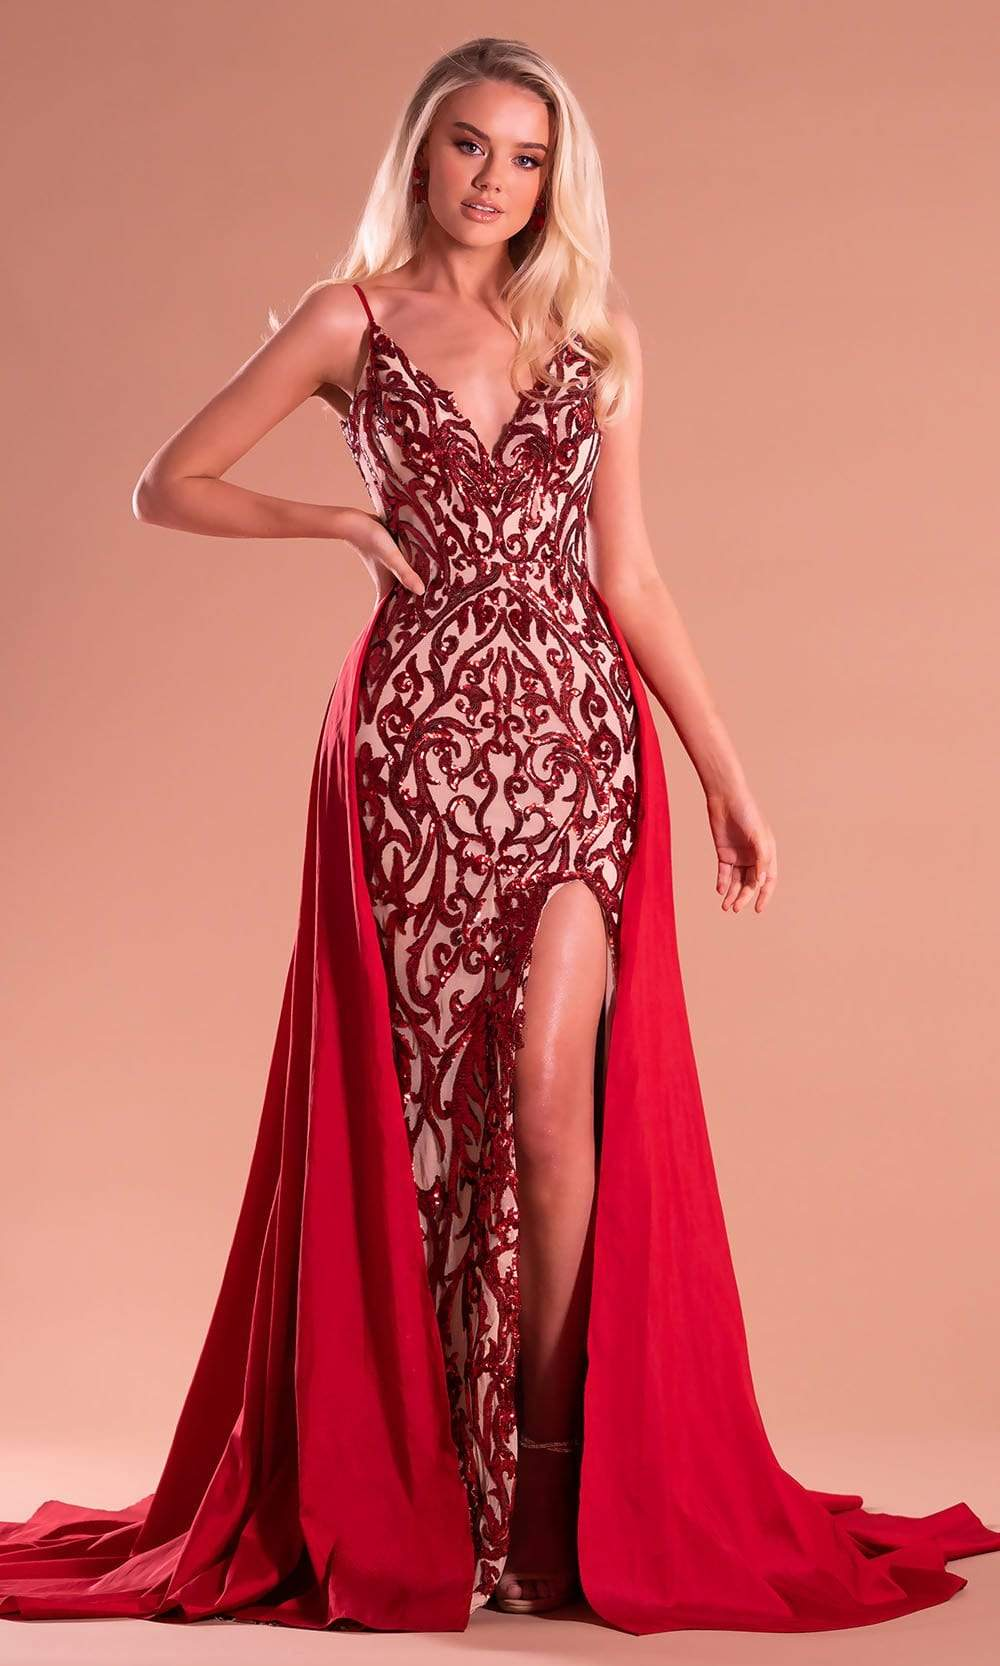 Portia and Scarlett - PS21223 Sequined High Slit Overskirt Gown from Portia and Scarlett